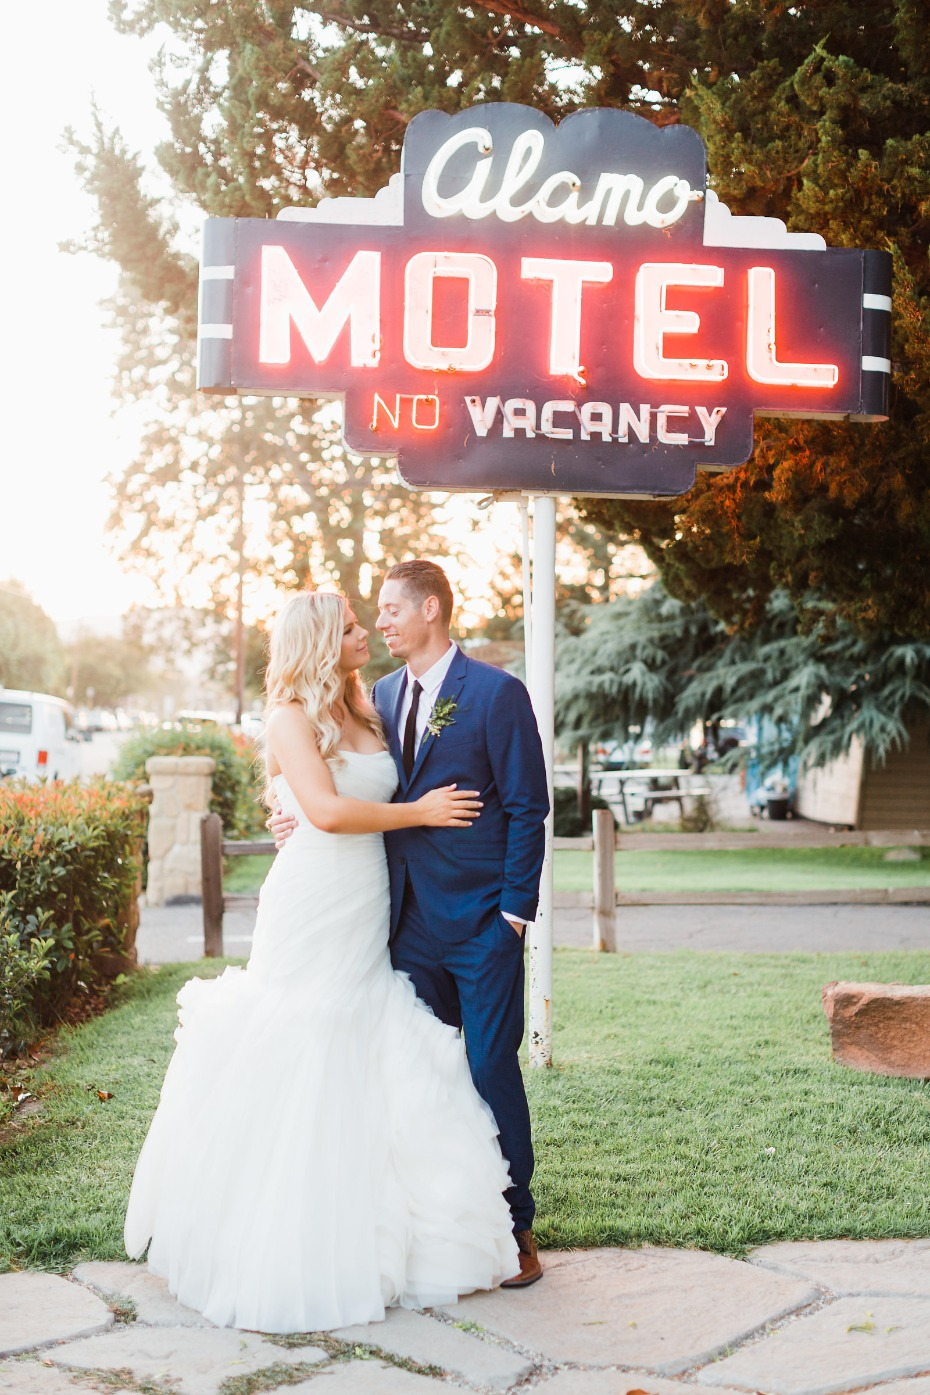 Relaxed SoCal vibe wedding at the Alamo Motel